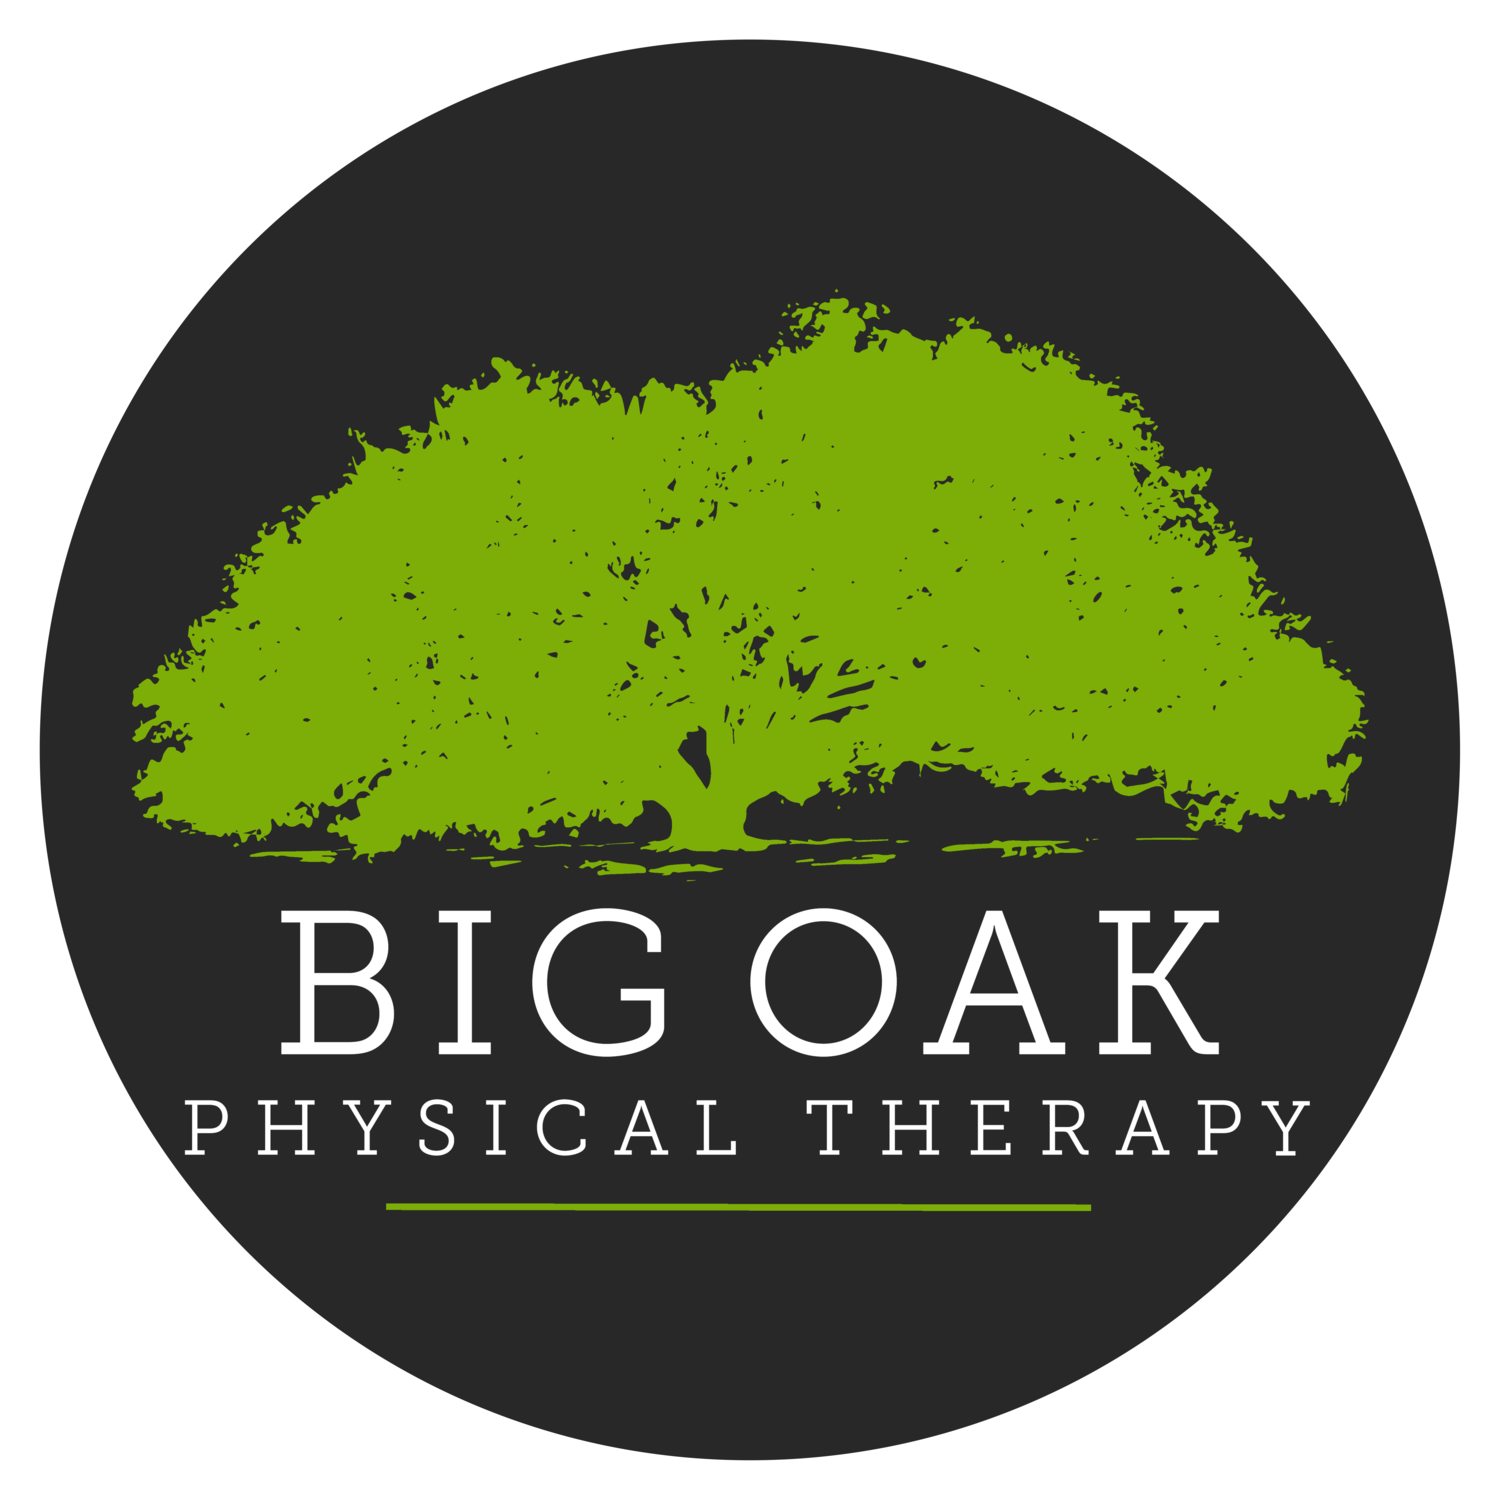 Big Oak Physical Therapy